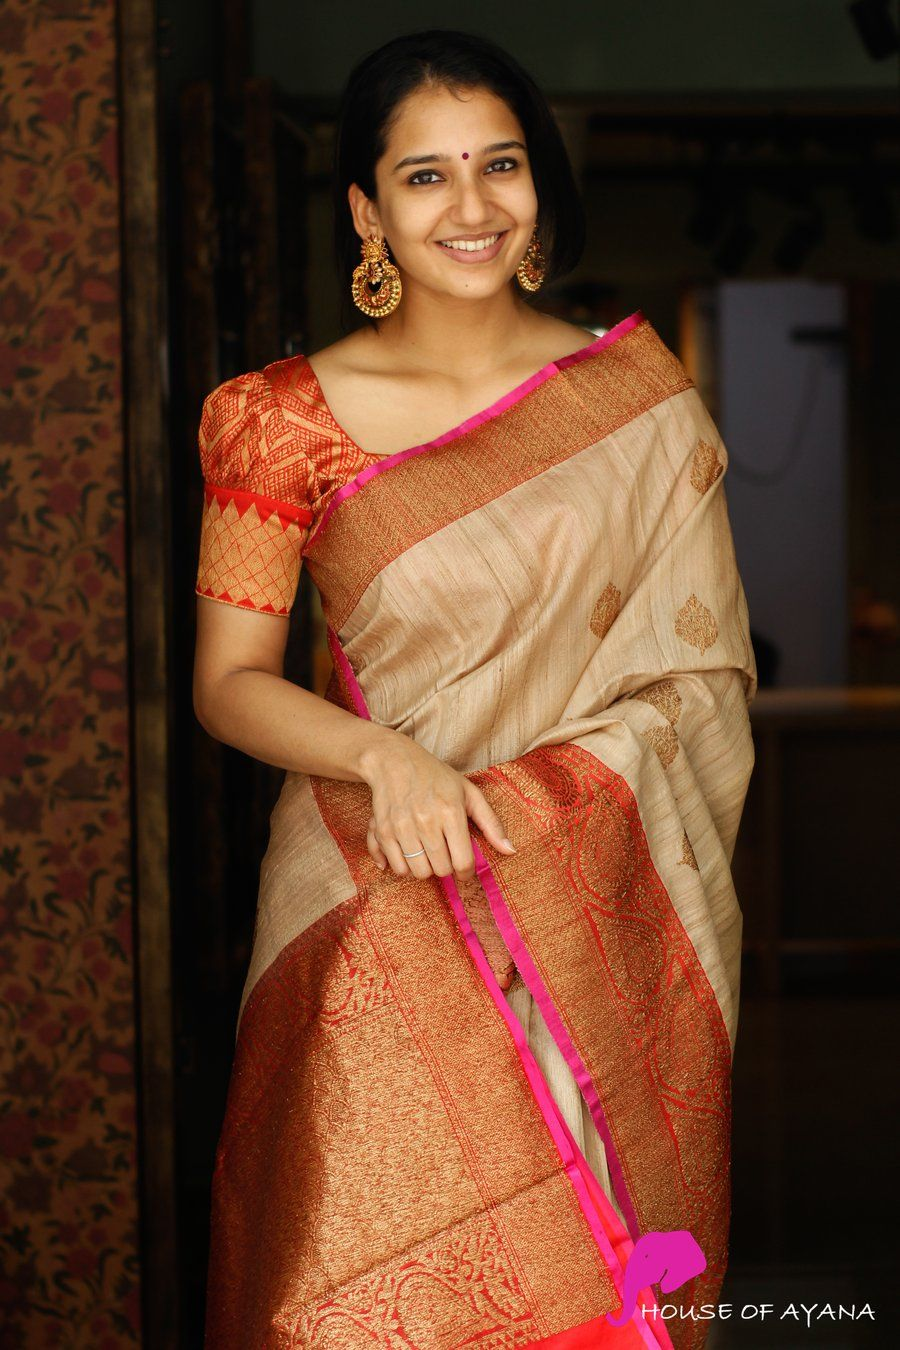 pattern of the blouse to give a new look to the Banarasi saree.